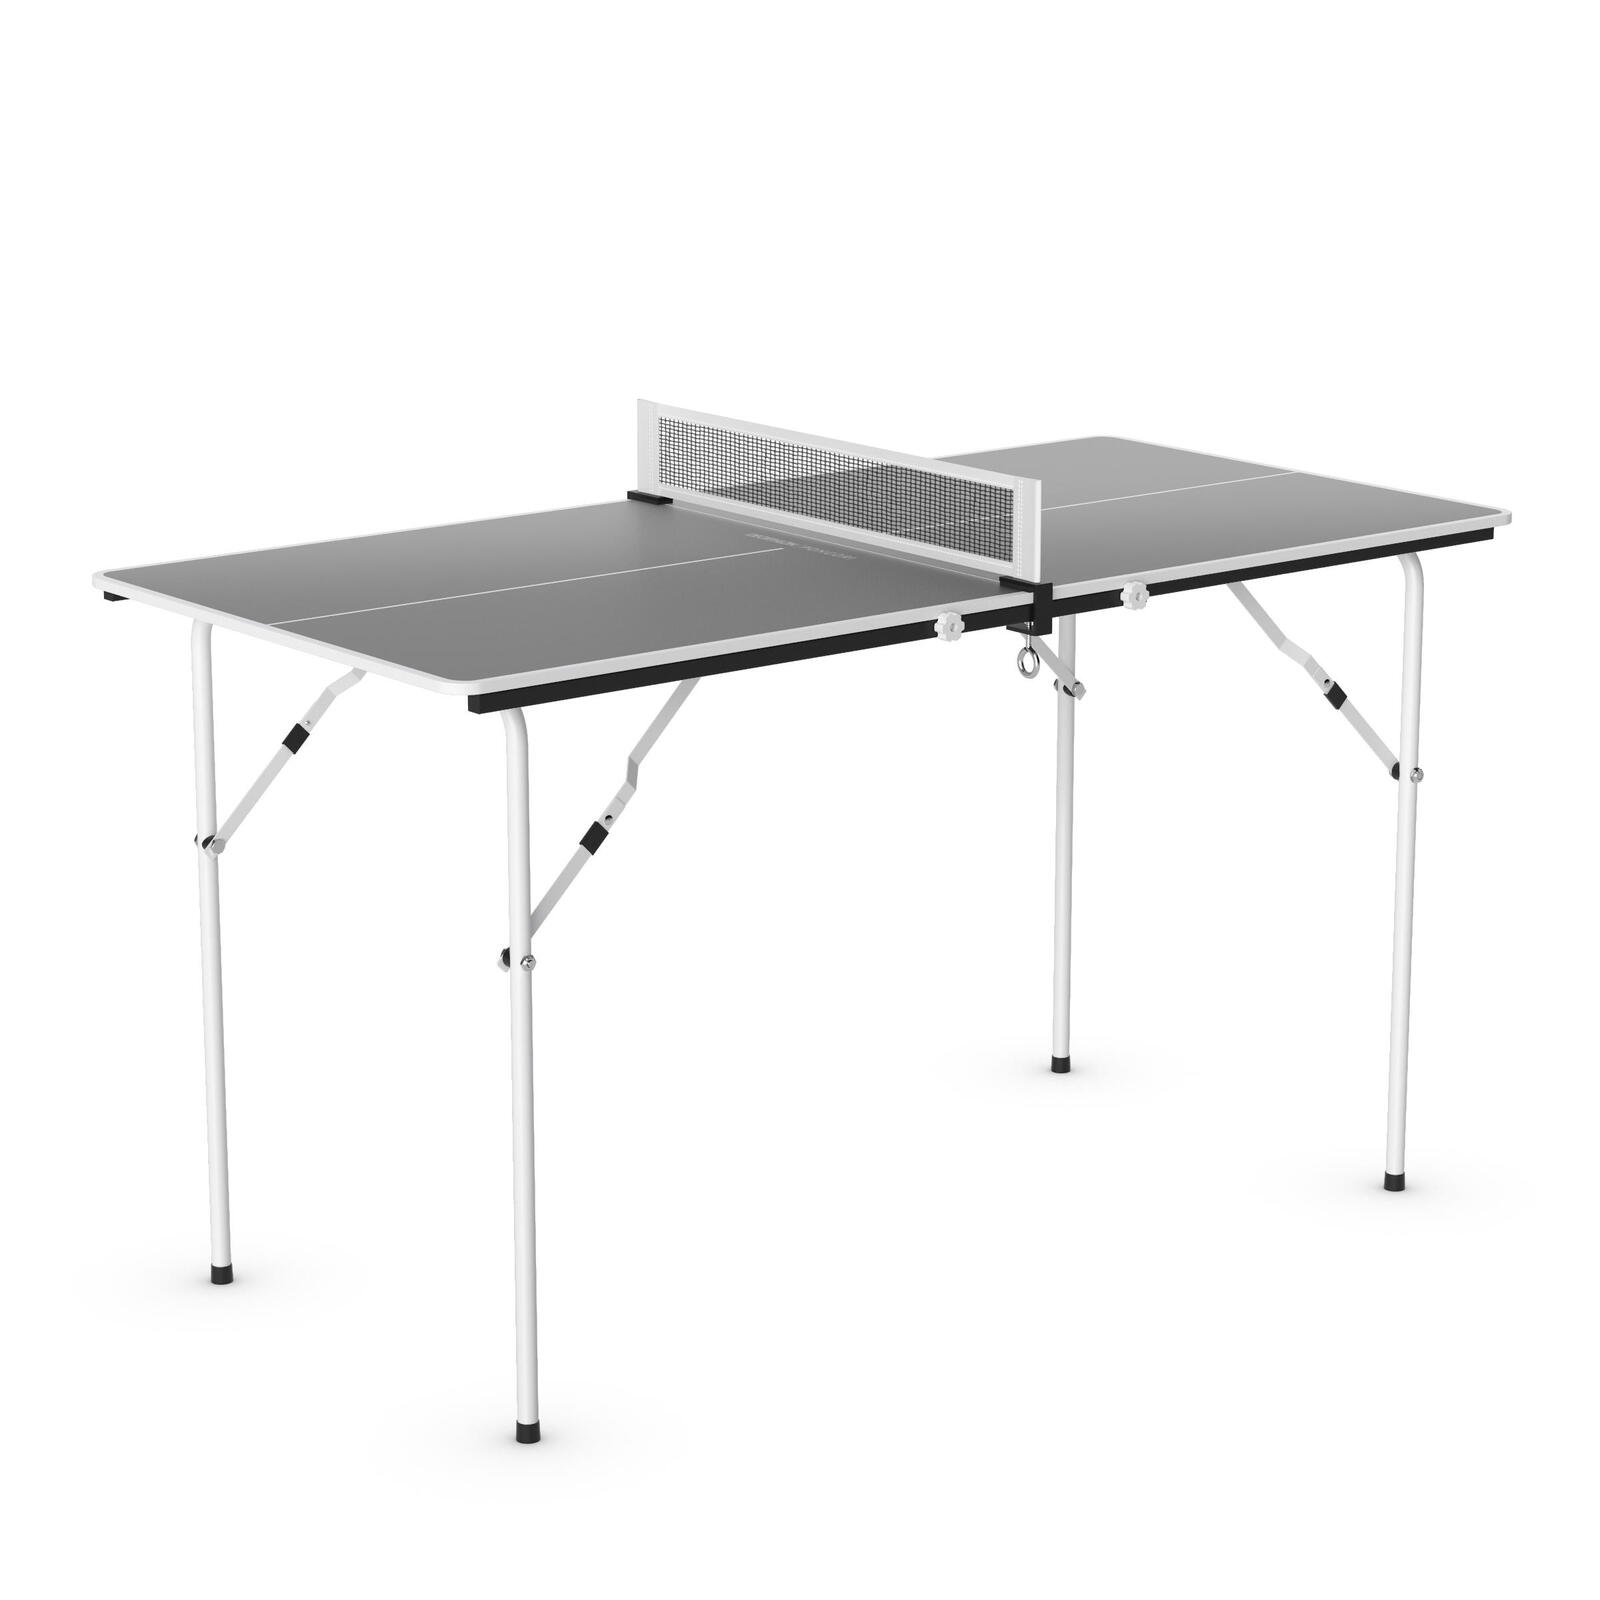 Small Indoor Table Tennis PPT 130